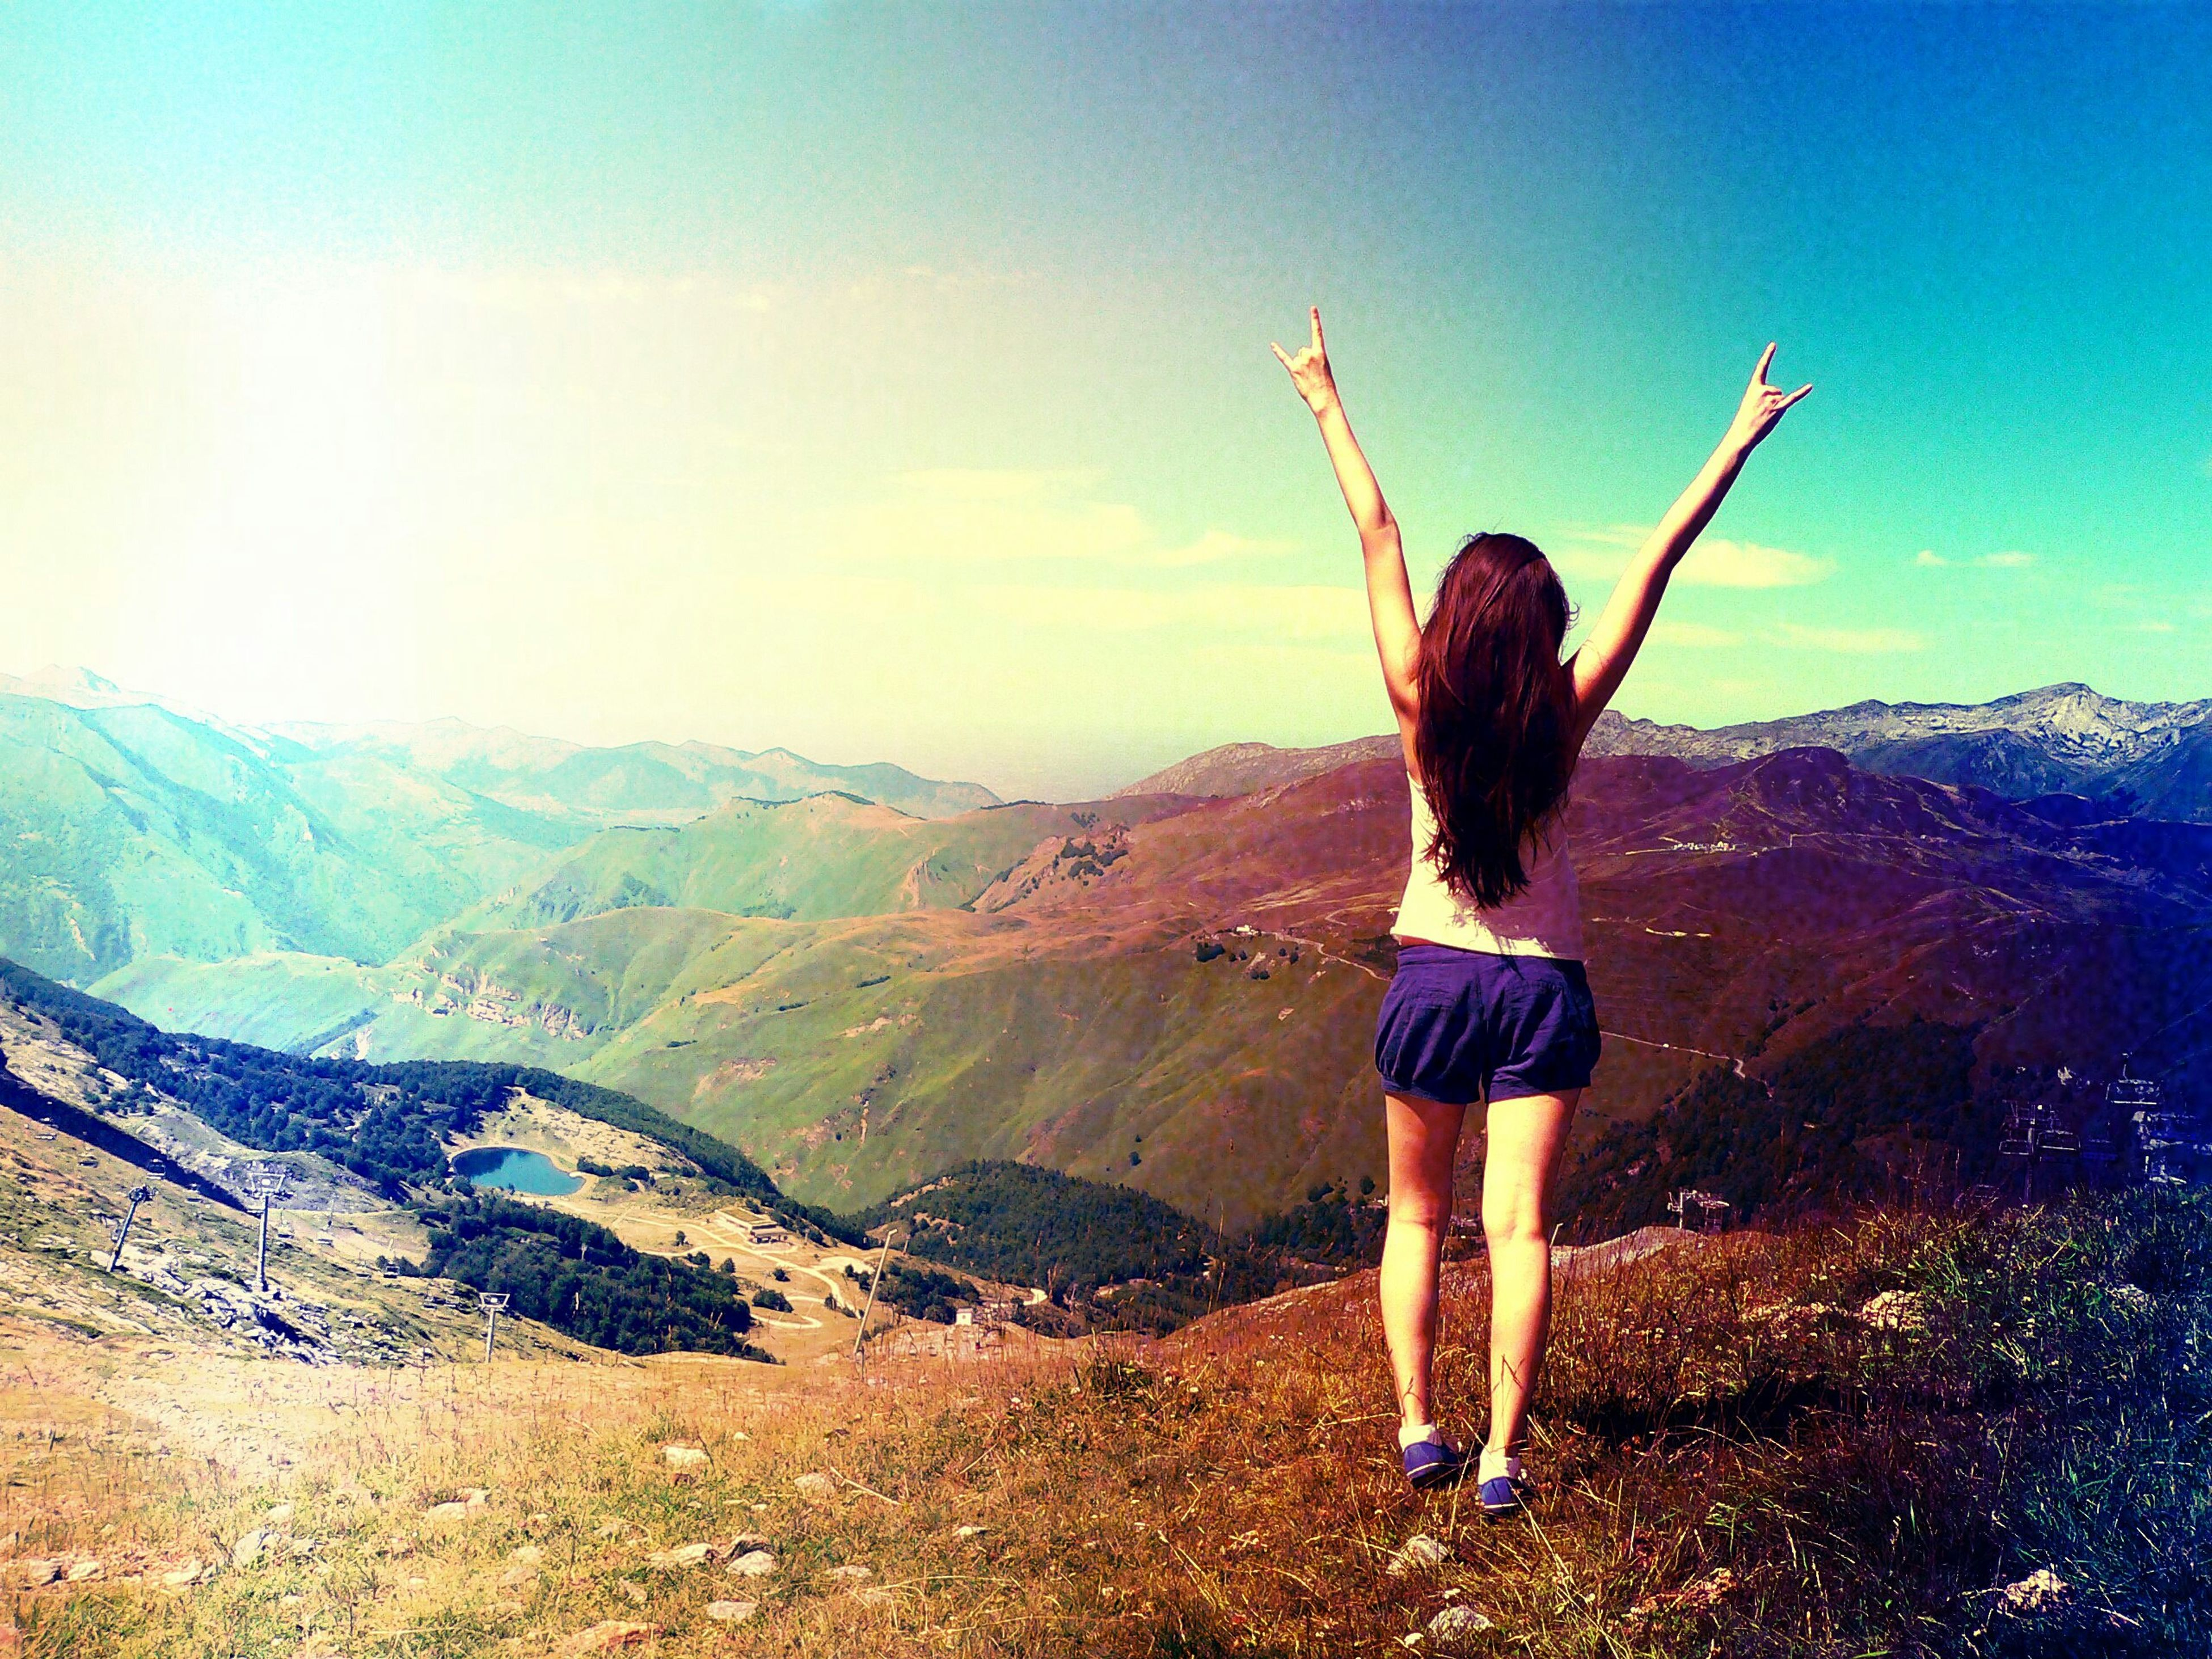 full length, lifestyles, leisure activity, mountain, standing, casual clothing, sky, tranquil scene, landscape, tranquility, scenics, young adult, beauty in nature, nature, rear view, arms outstretched, young women, mountain range